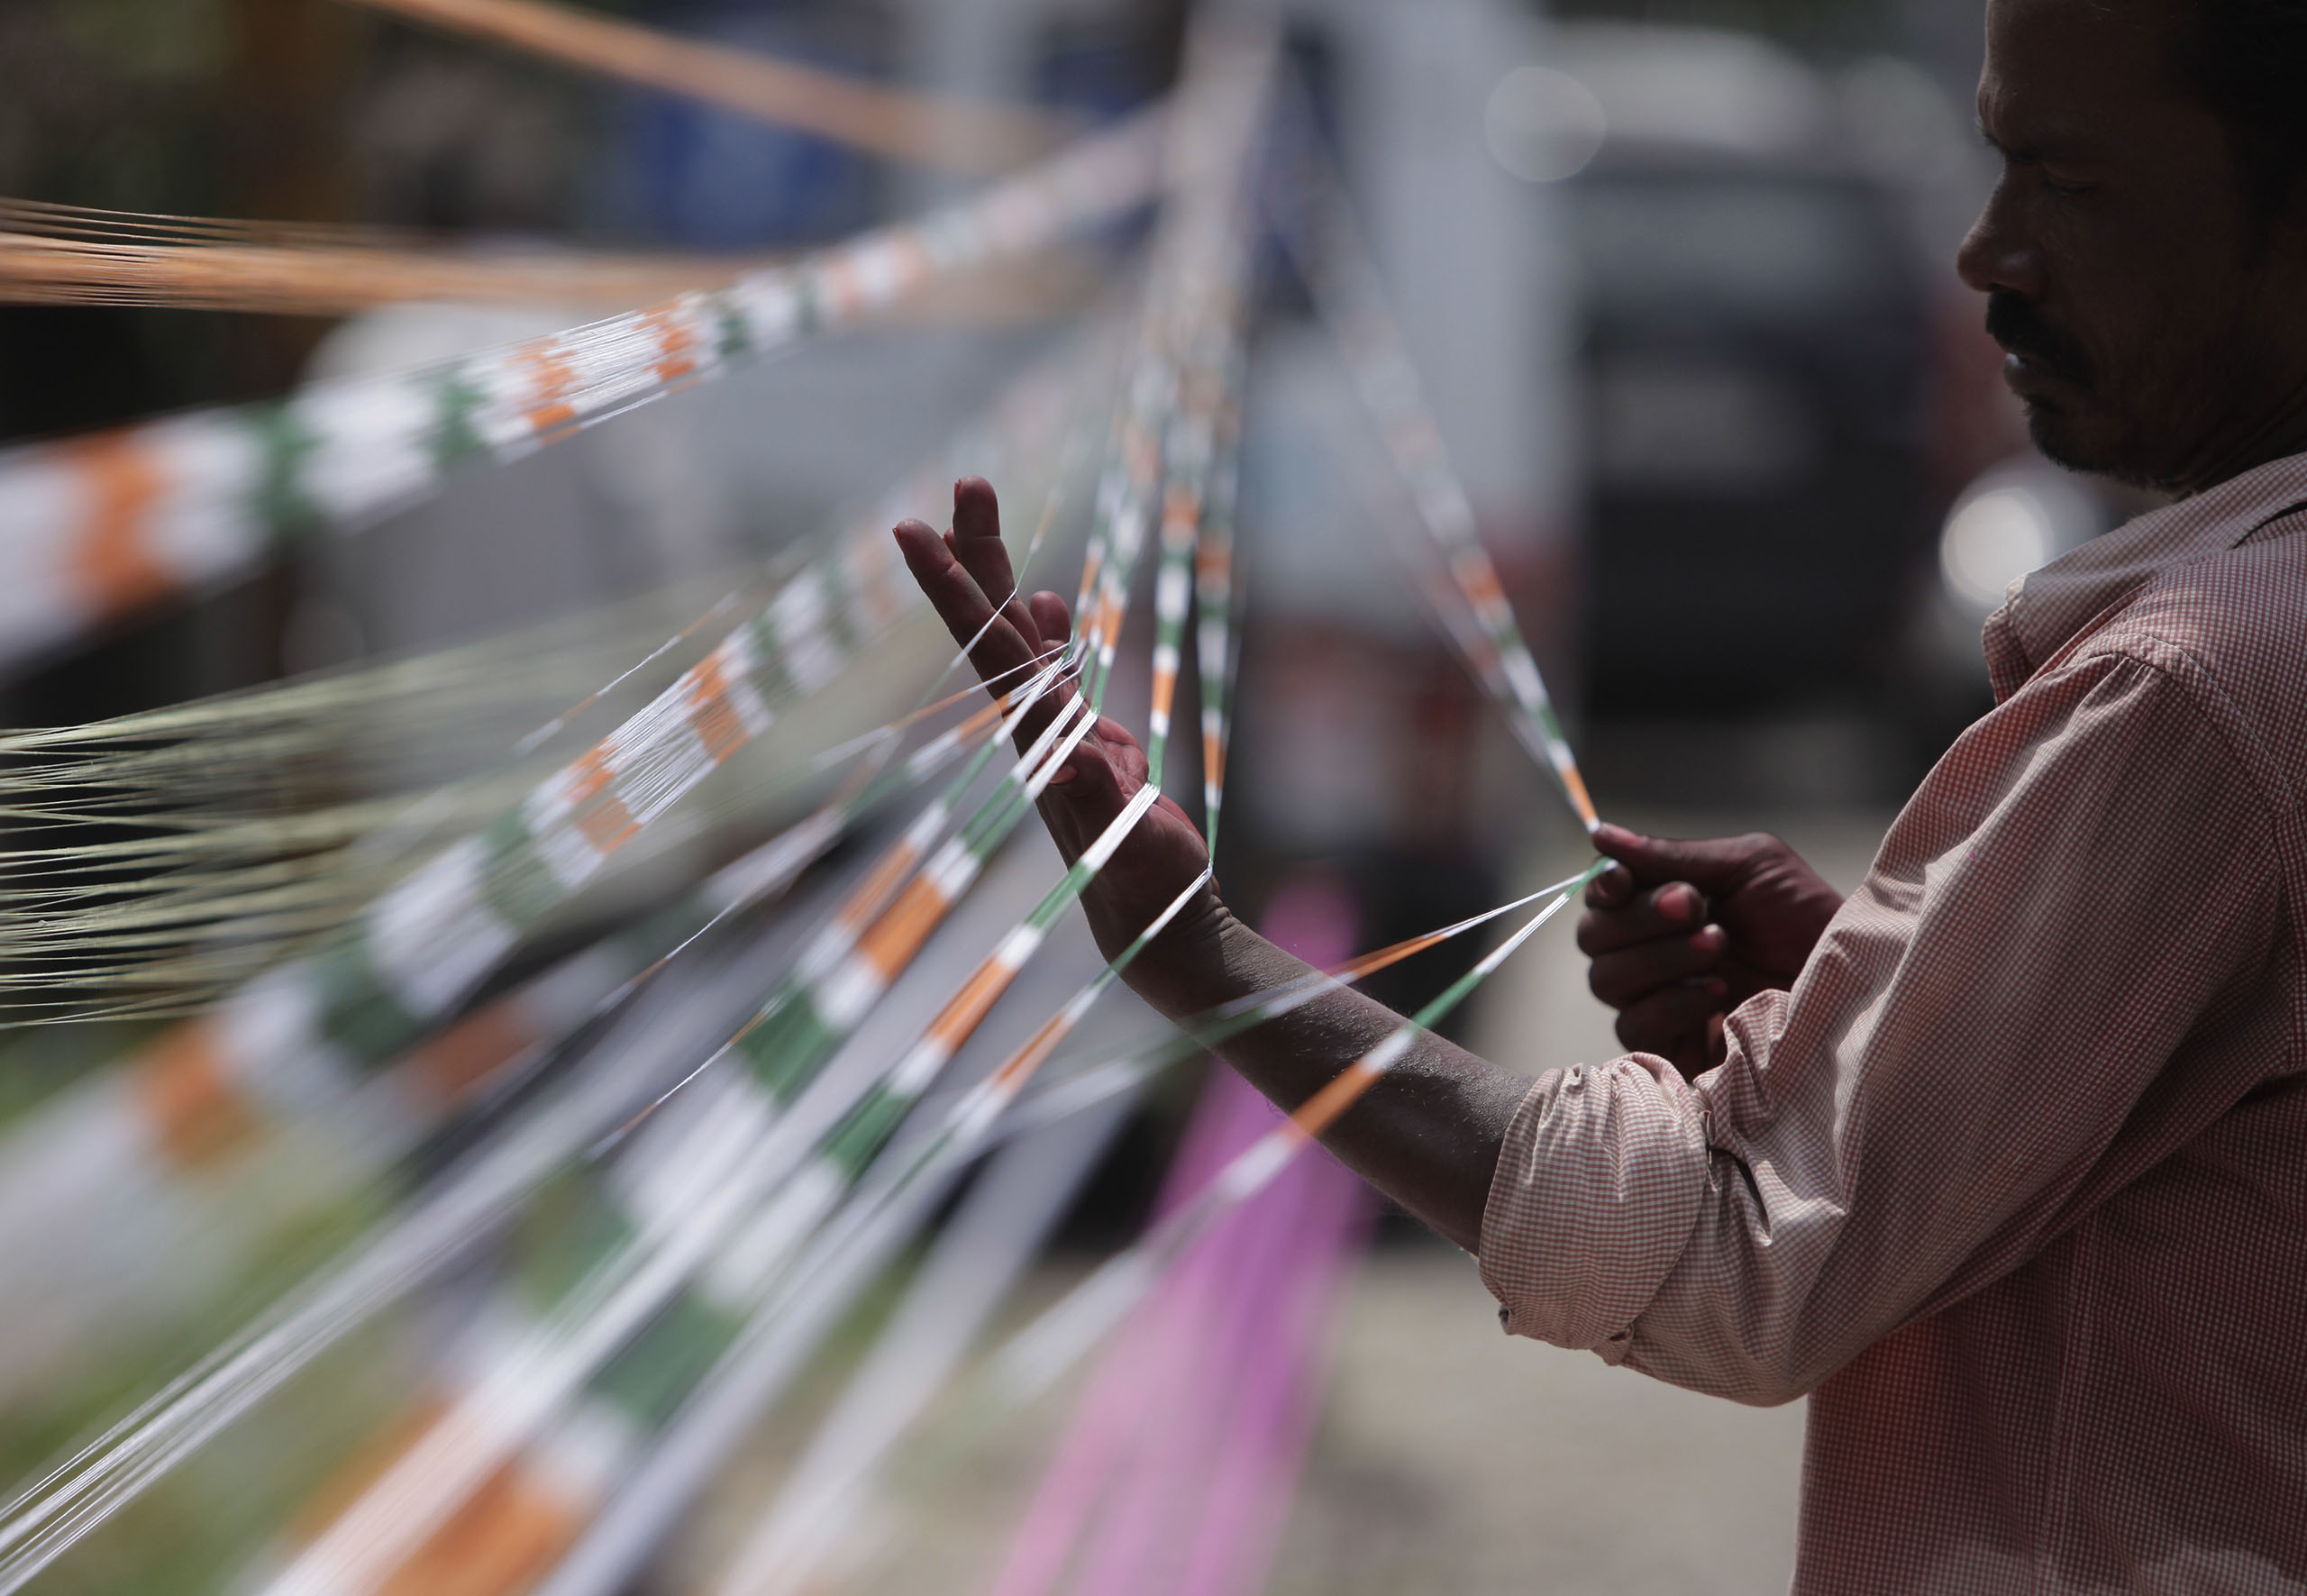 A professional thread maker prepares threads with the three colors of the Indian flag for flying kites in Jammu, India, Aug.13, 2016.